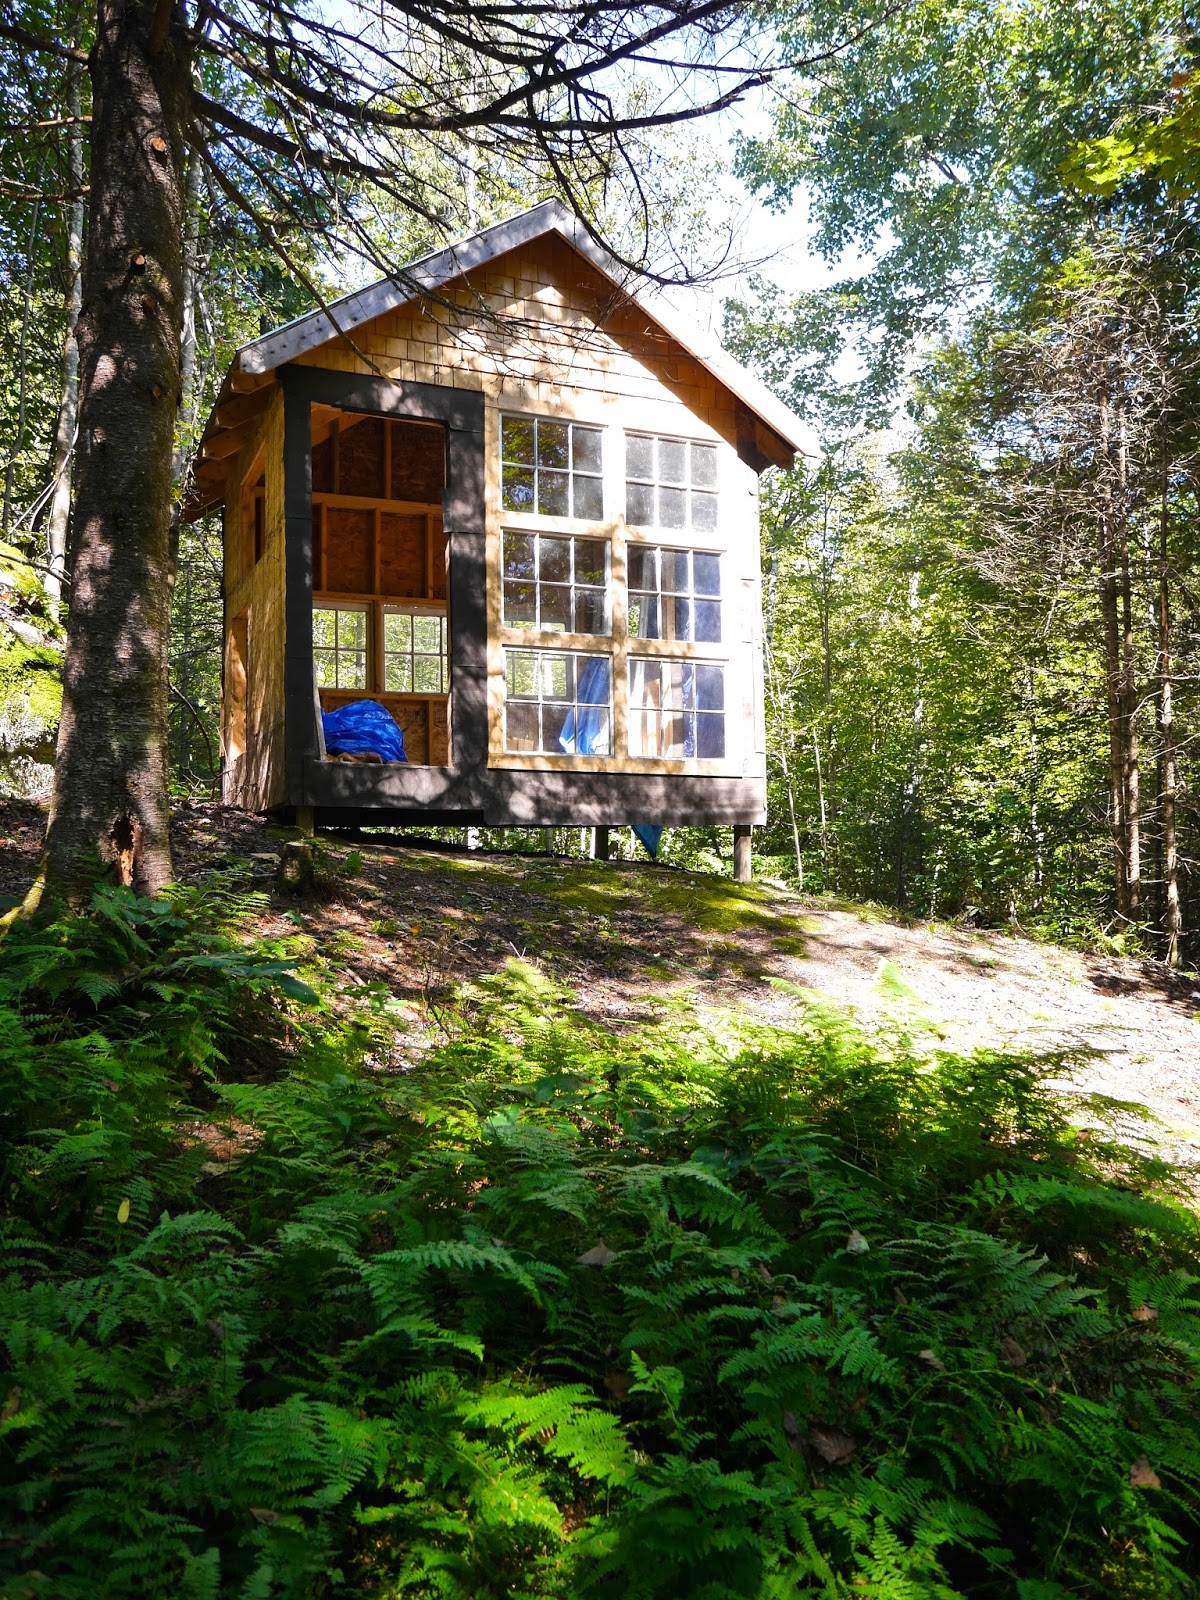 Building a shed on a hill - One Cabin 8 By 14 That We Ll Work On It Still Needs A Loft Insulation Bathroom Deck Trim Door And More This Is One Of A Few Projects On Our